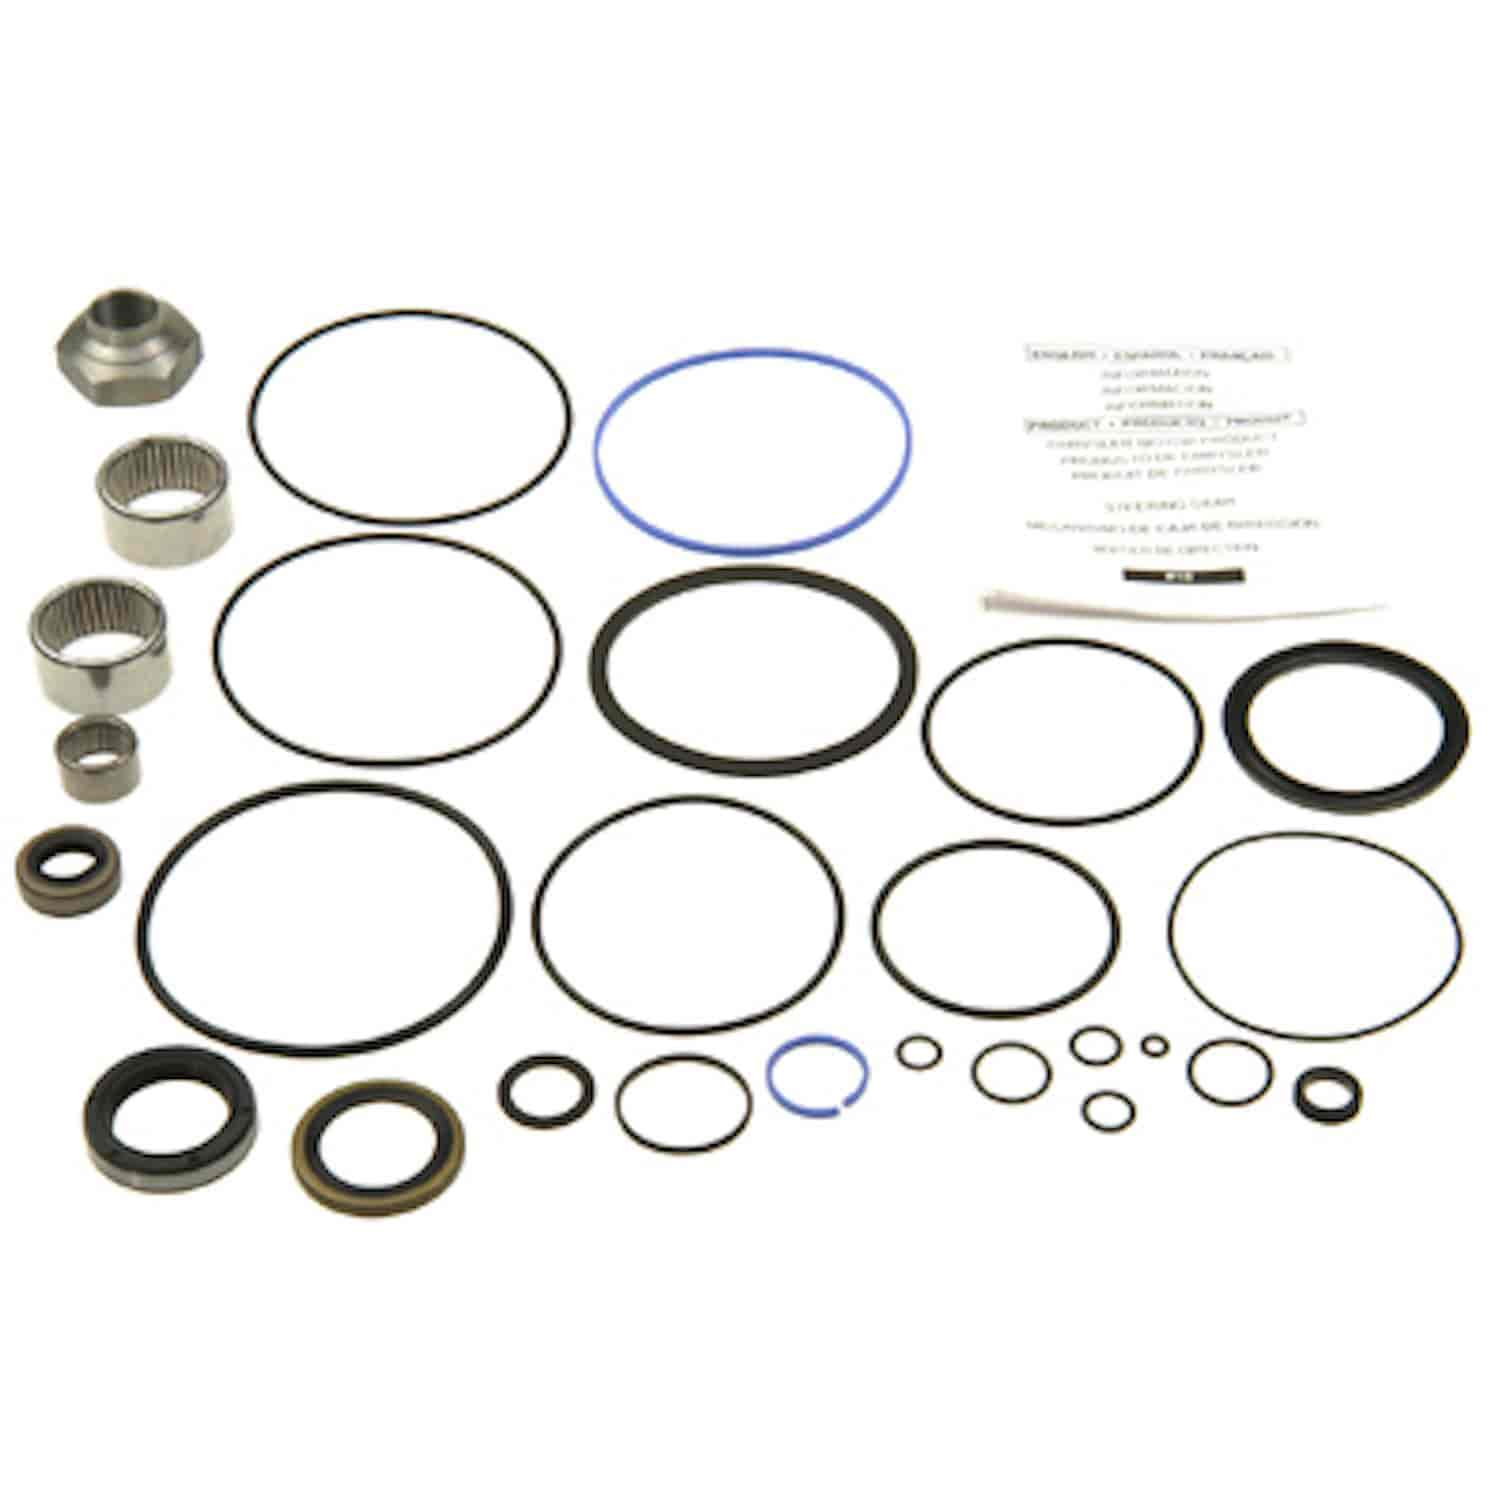 Gates 350510 Power Steering Repair Kits Jegs Wiring Diagrams Of 1962 Plymouth V8 Savoy Belvedere And Fury